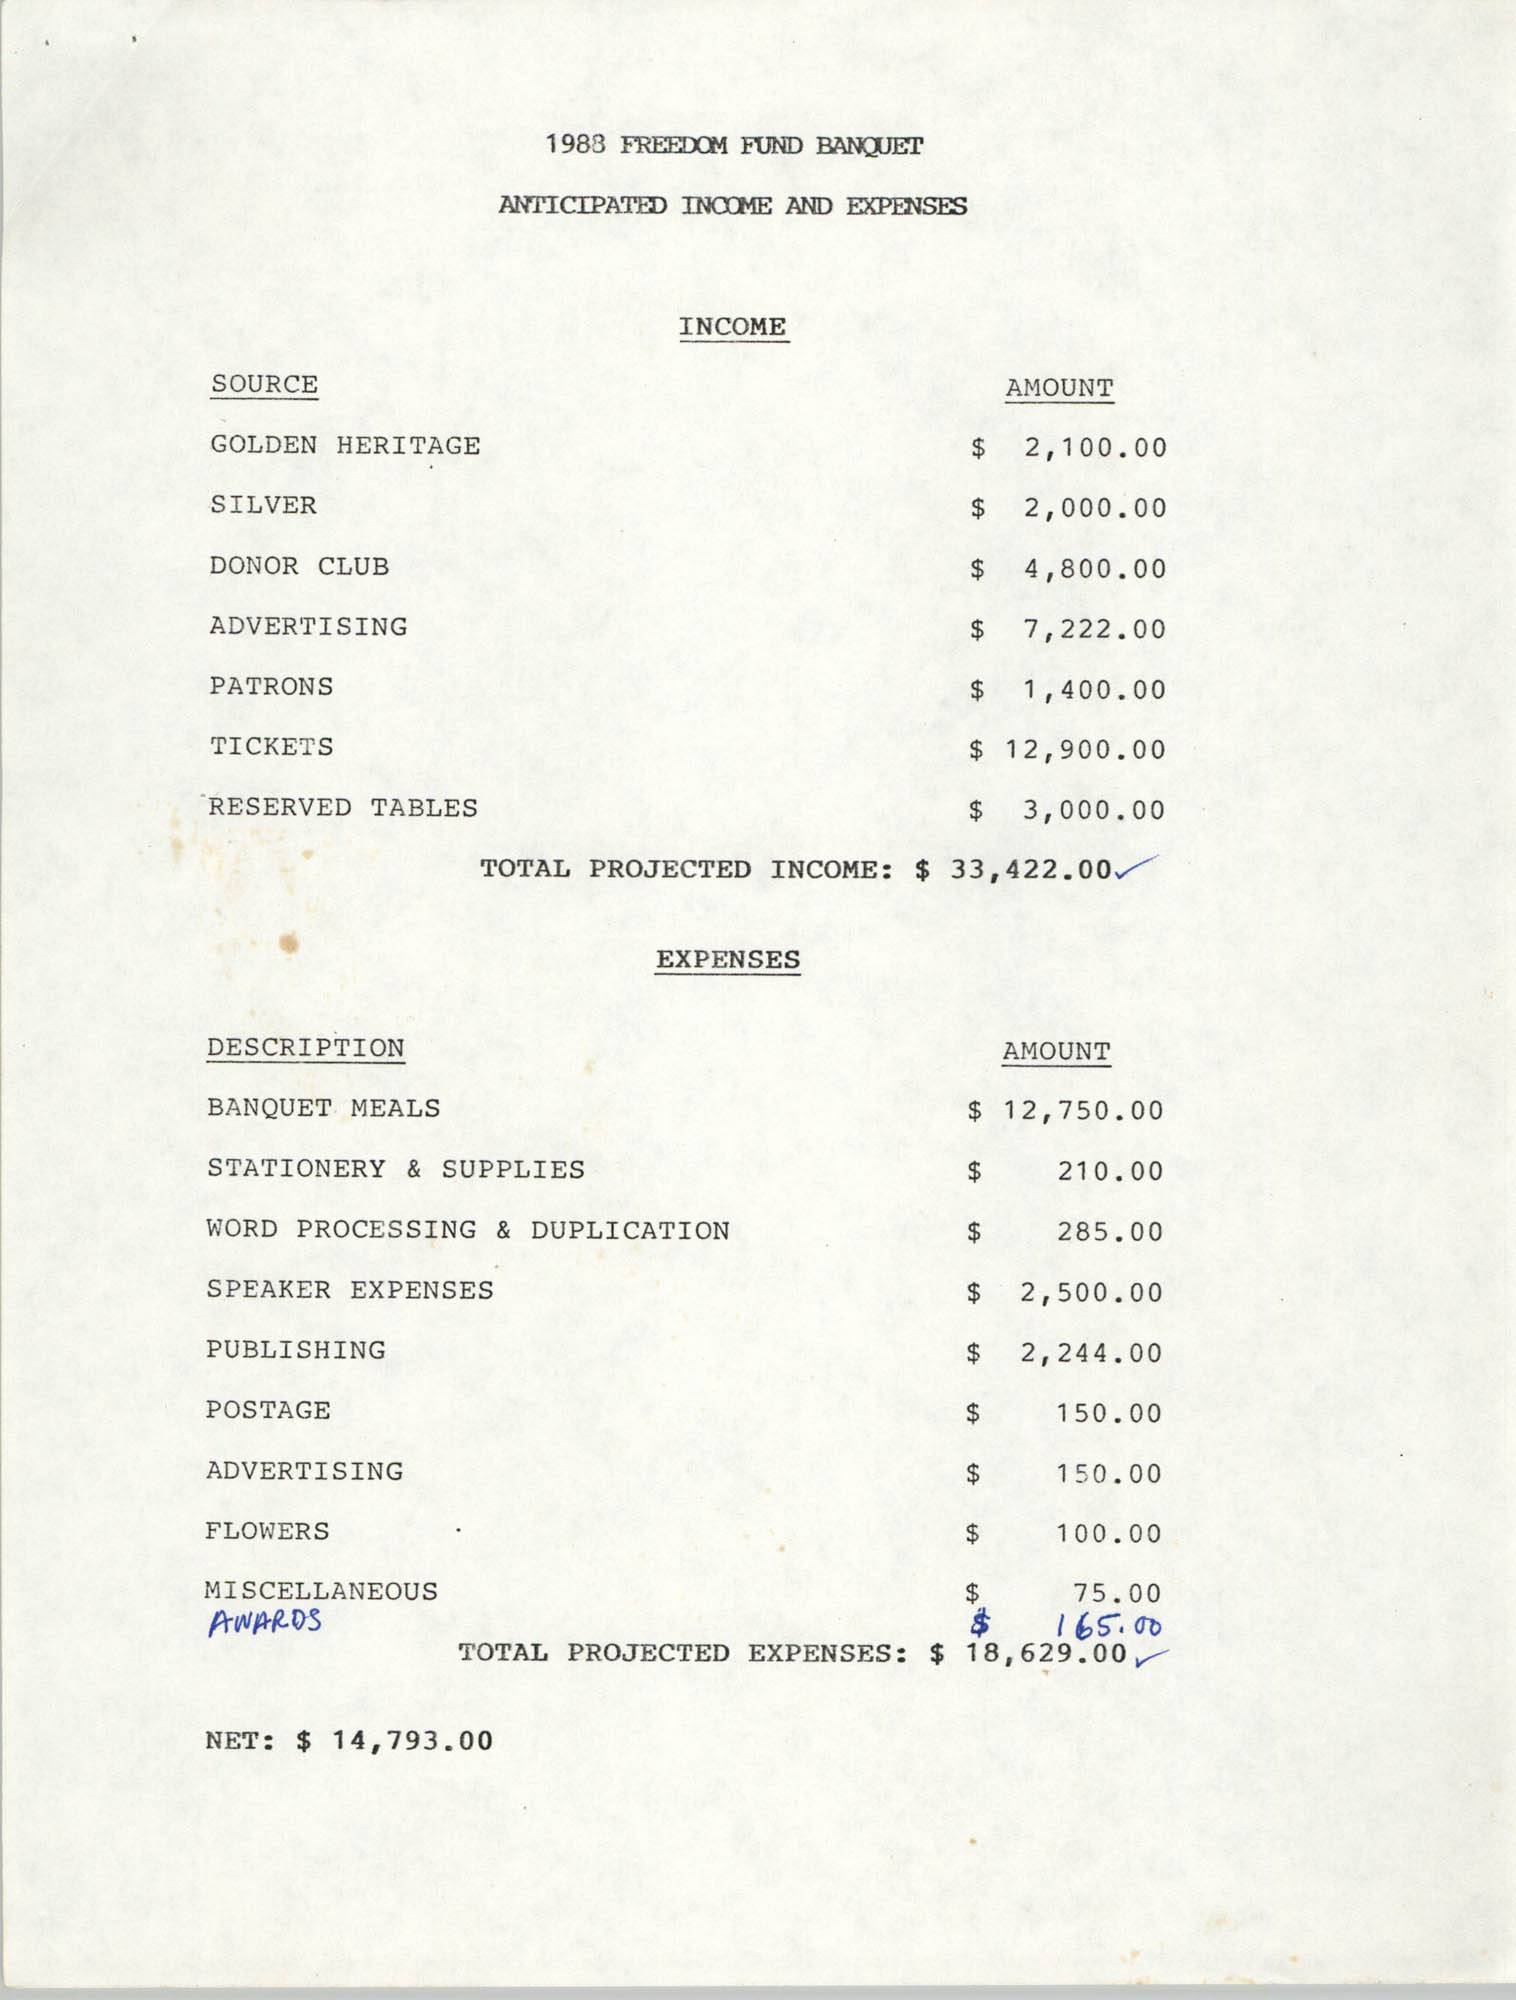 Anticipated Income and Expenses, 1988 Freedom Fund Banquet